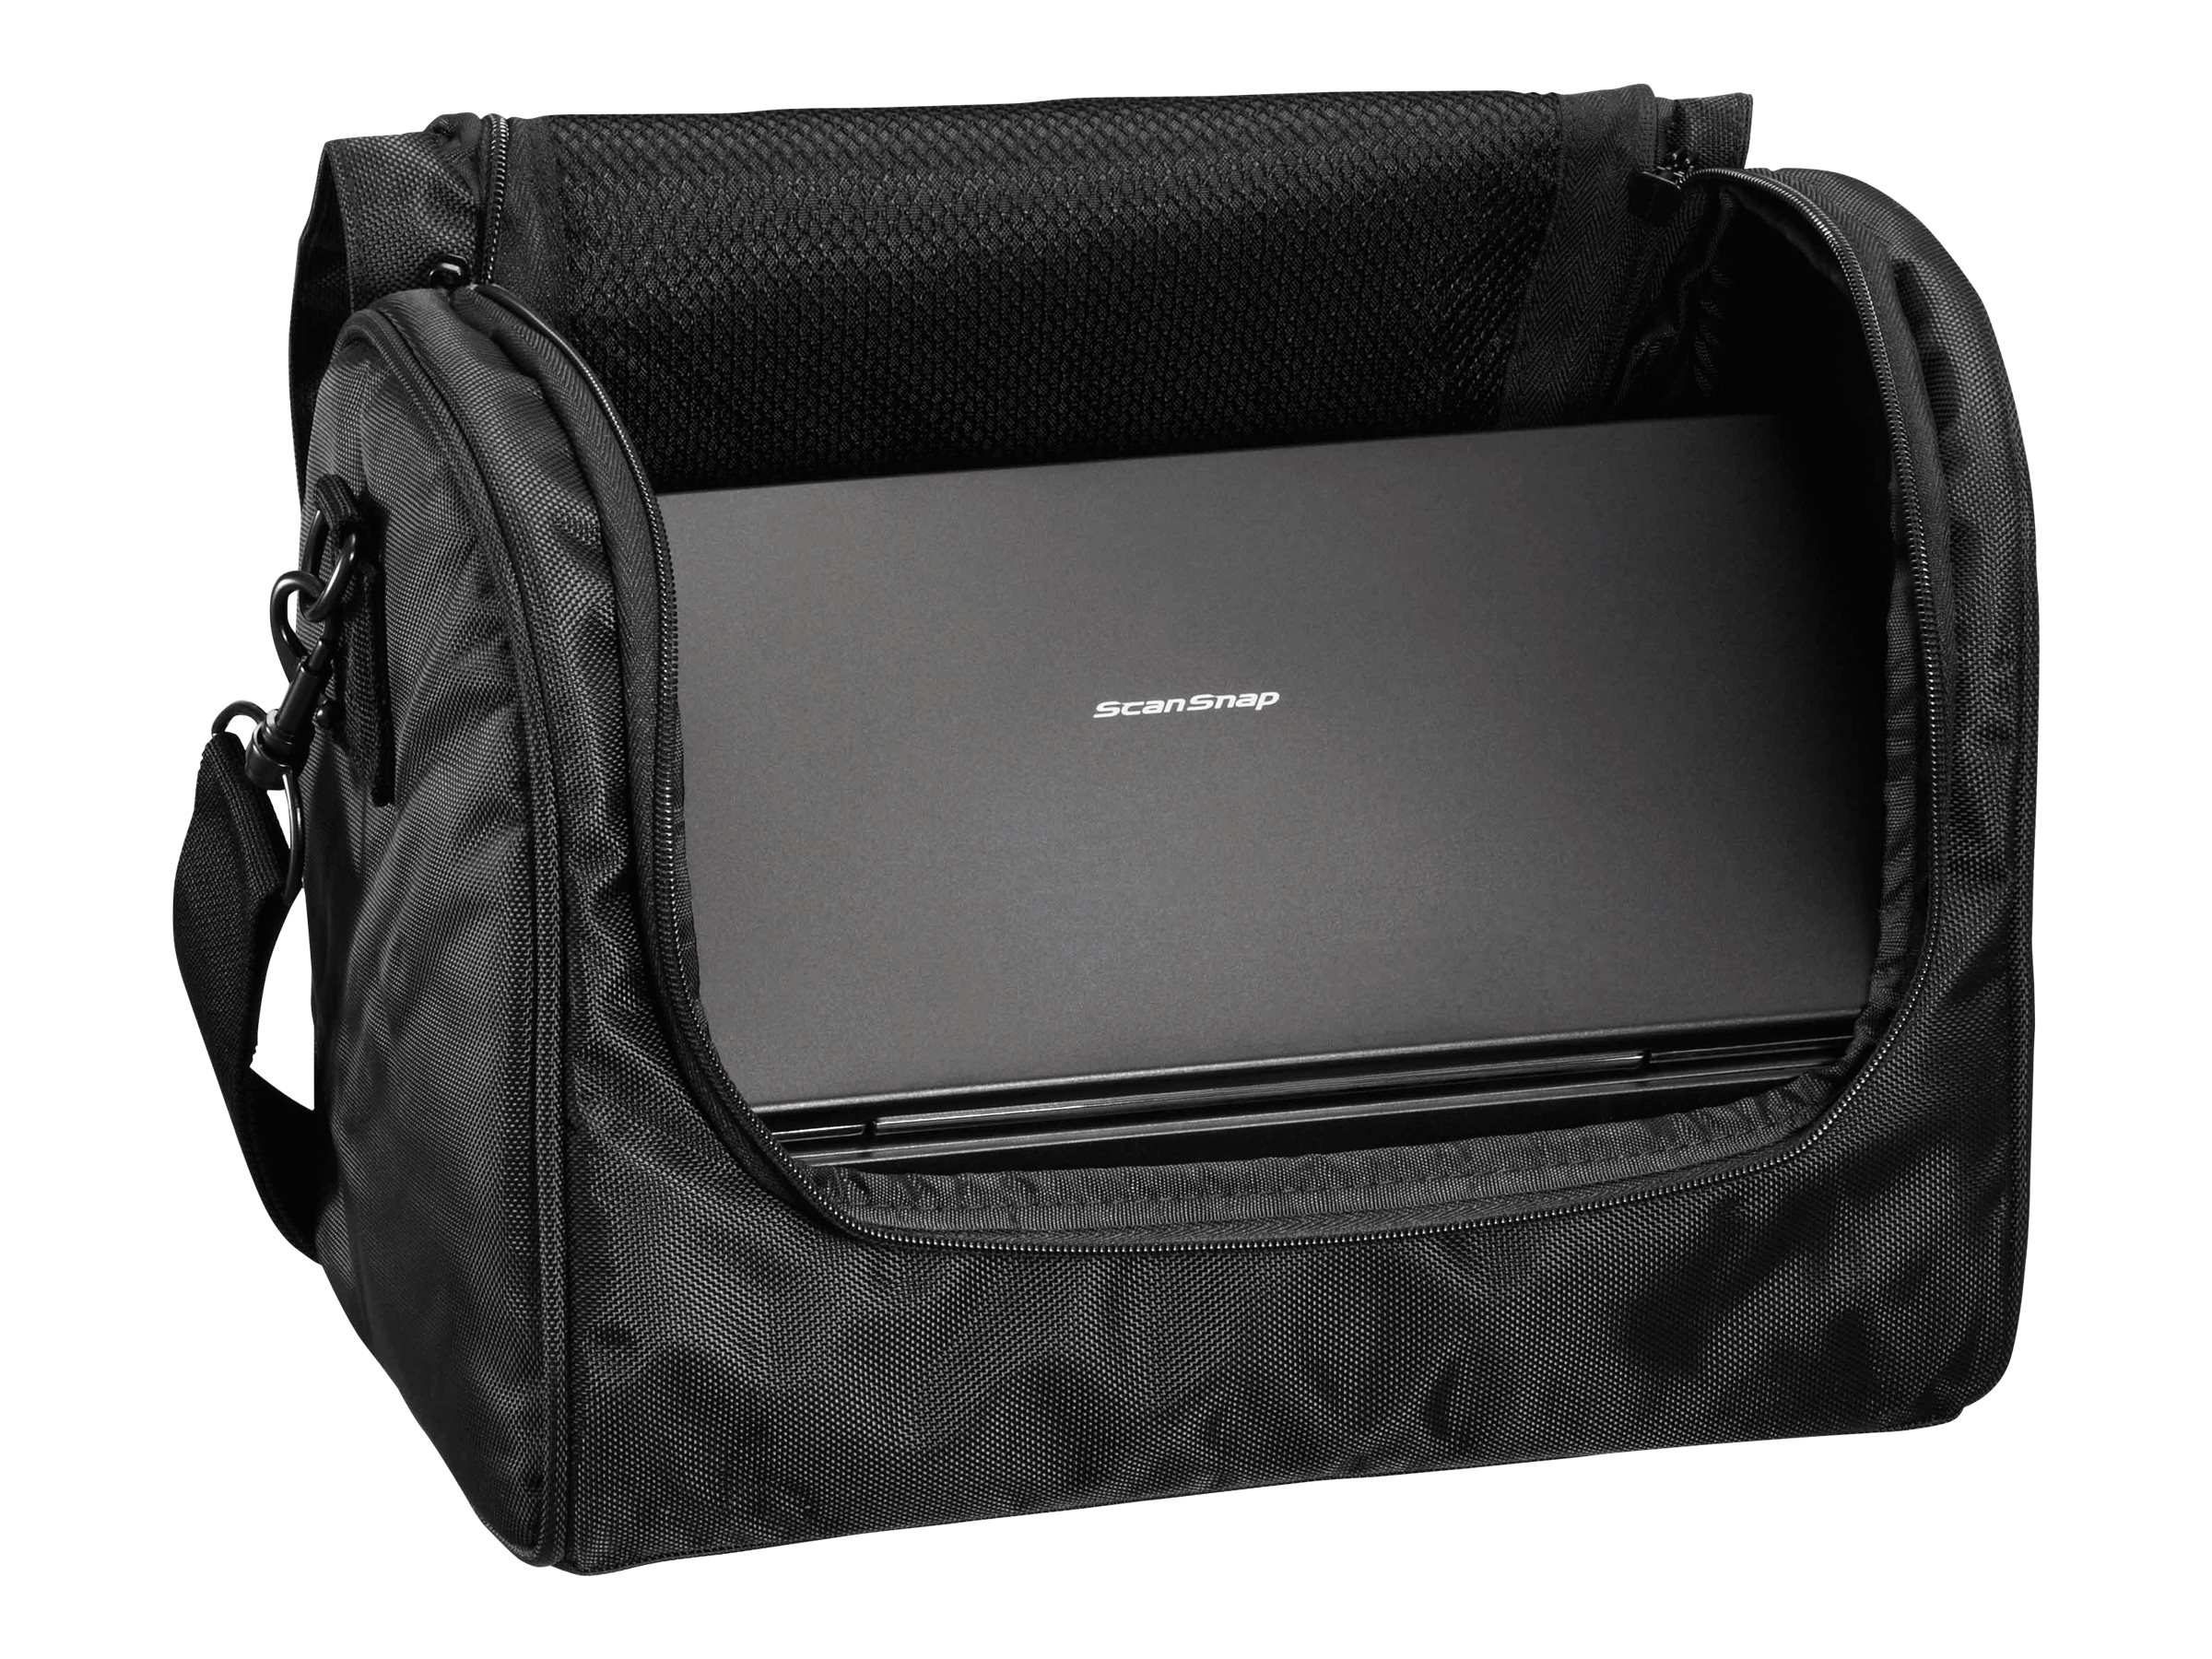 Fujitsu ScanSnap Carrying Case